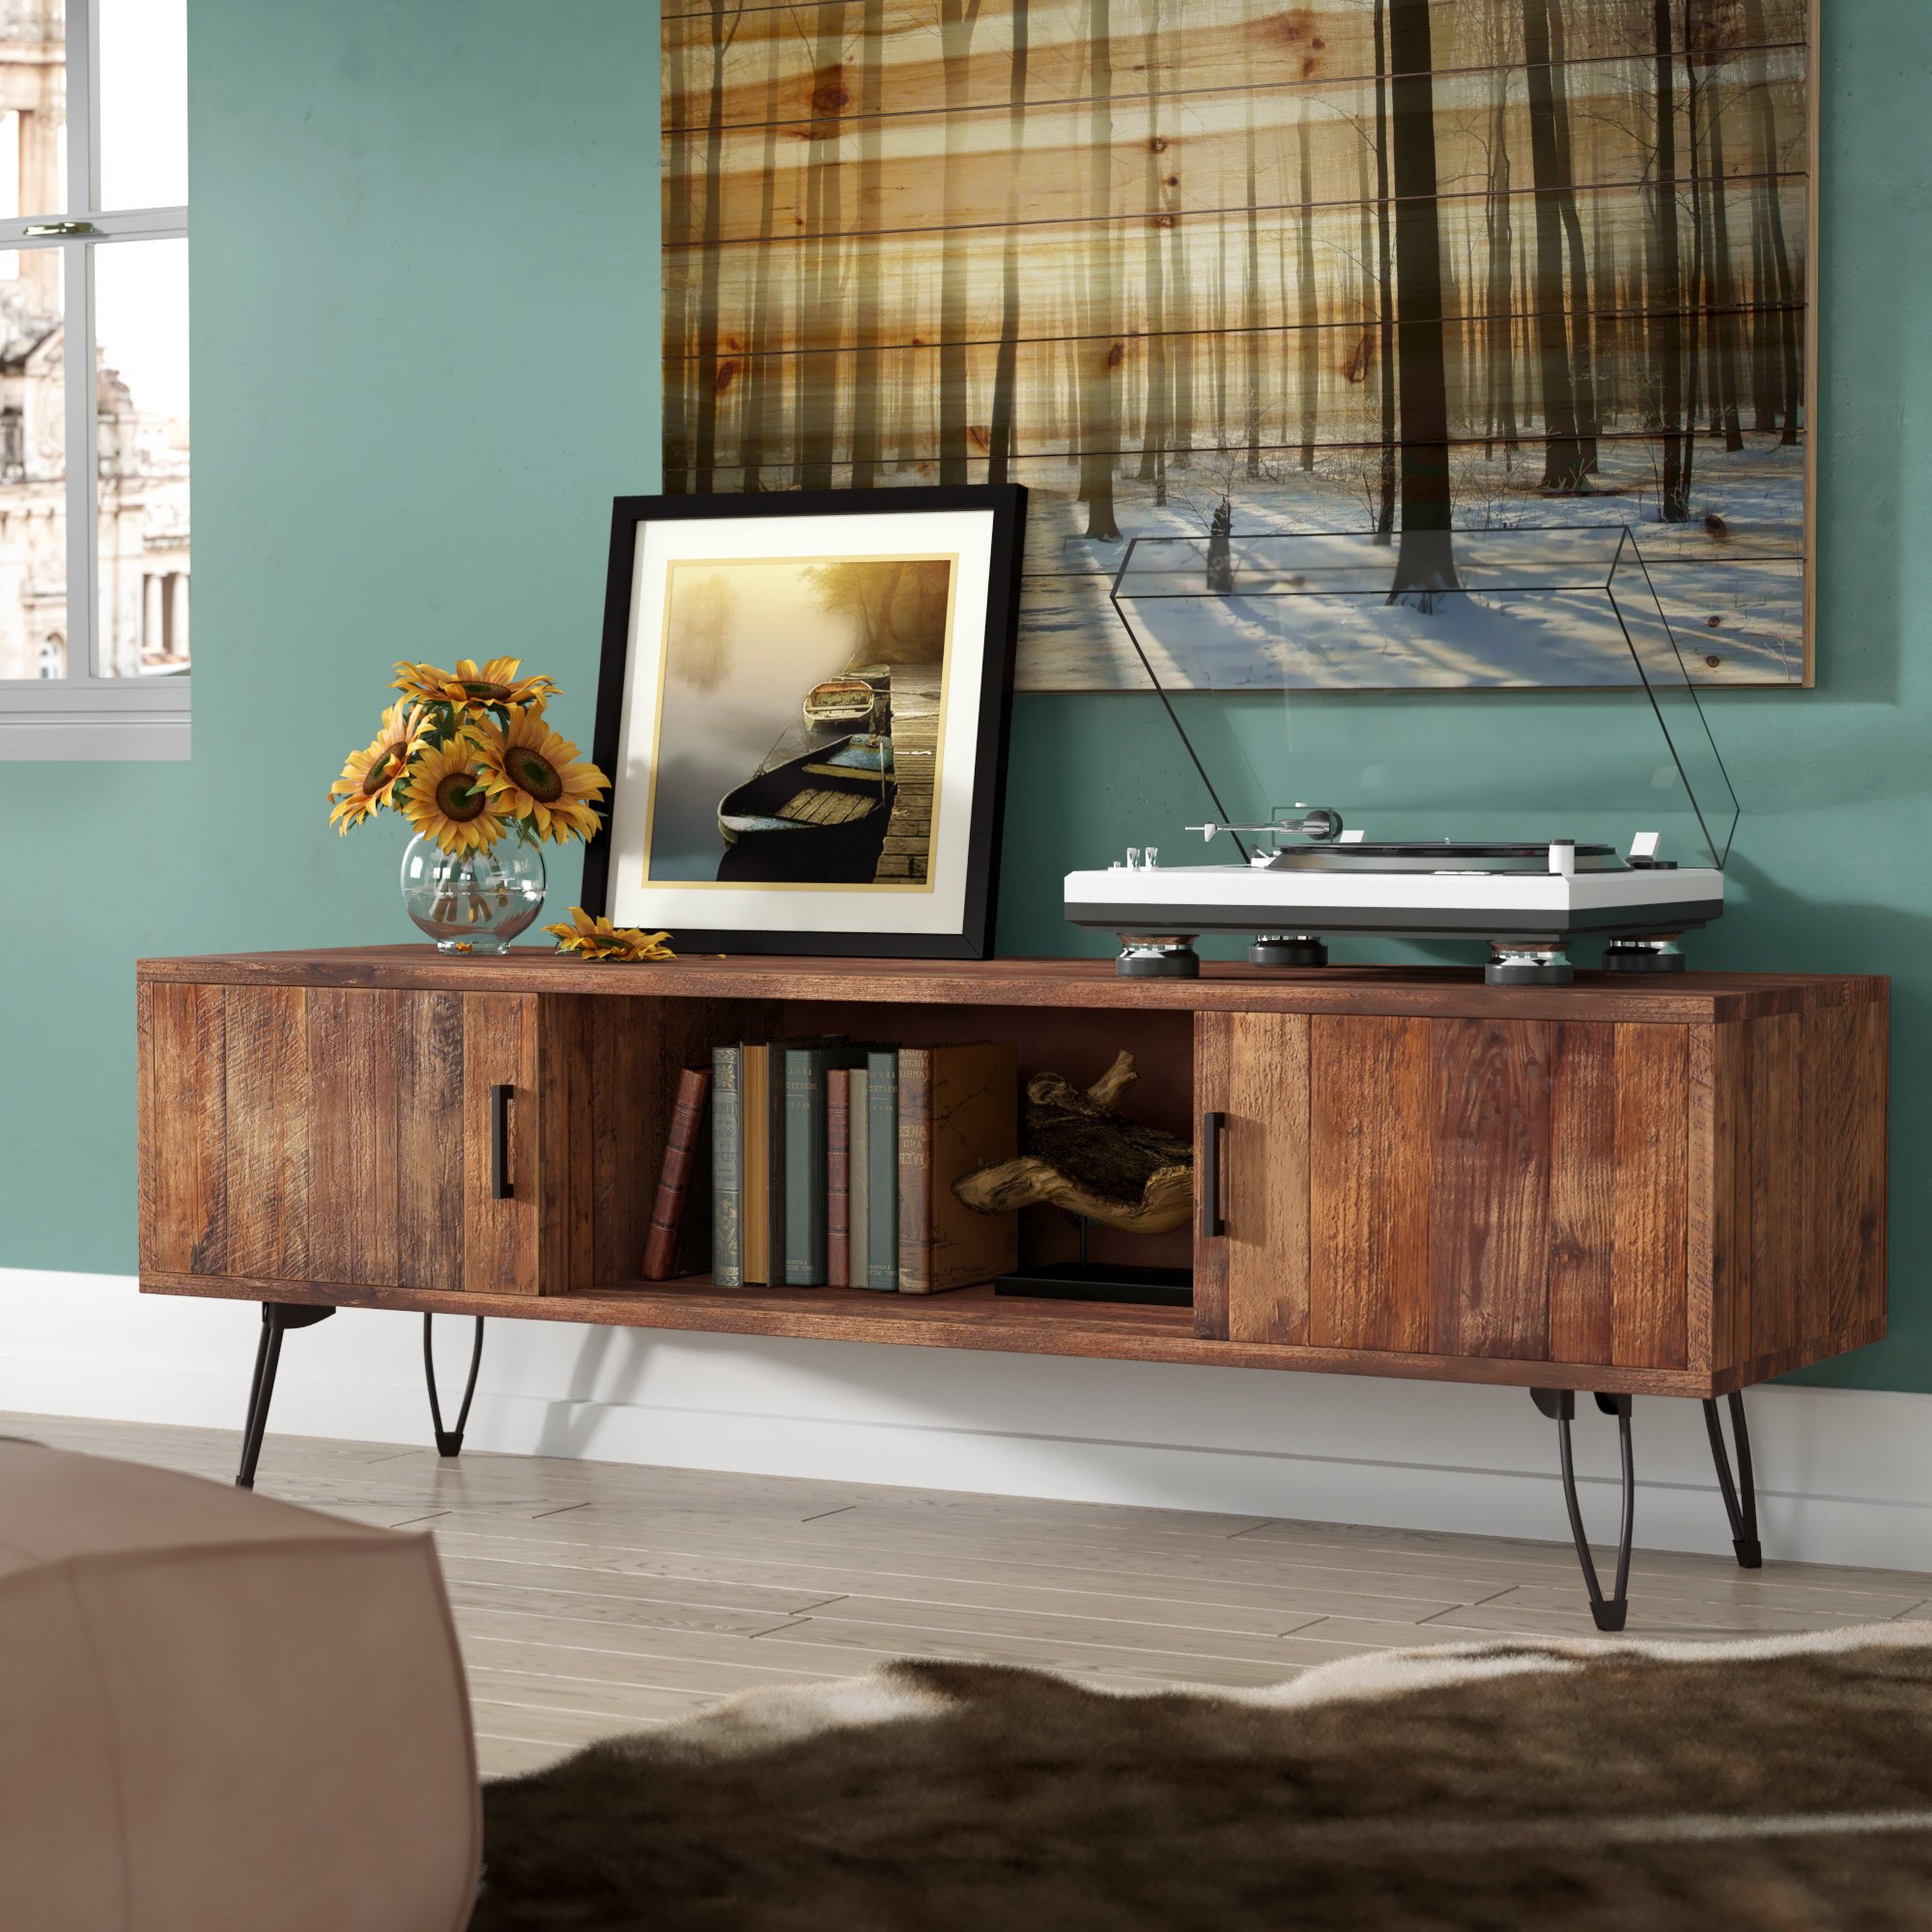 Solid Wood Tv Stands & Entertainment Centers You'll Love | Wayfair Throughout Natural Wood Mirrored Media Console Tables (View 10 of 20)